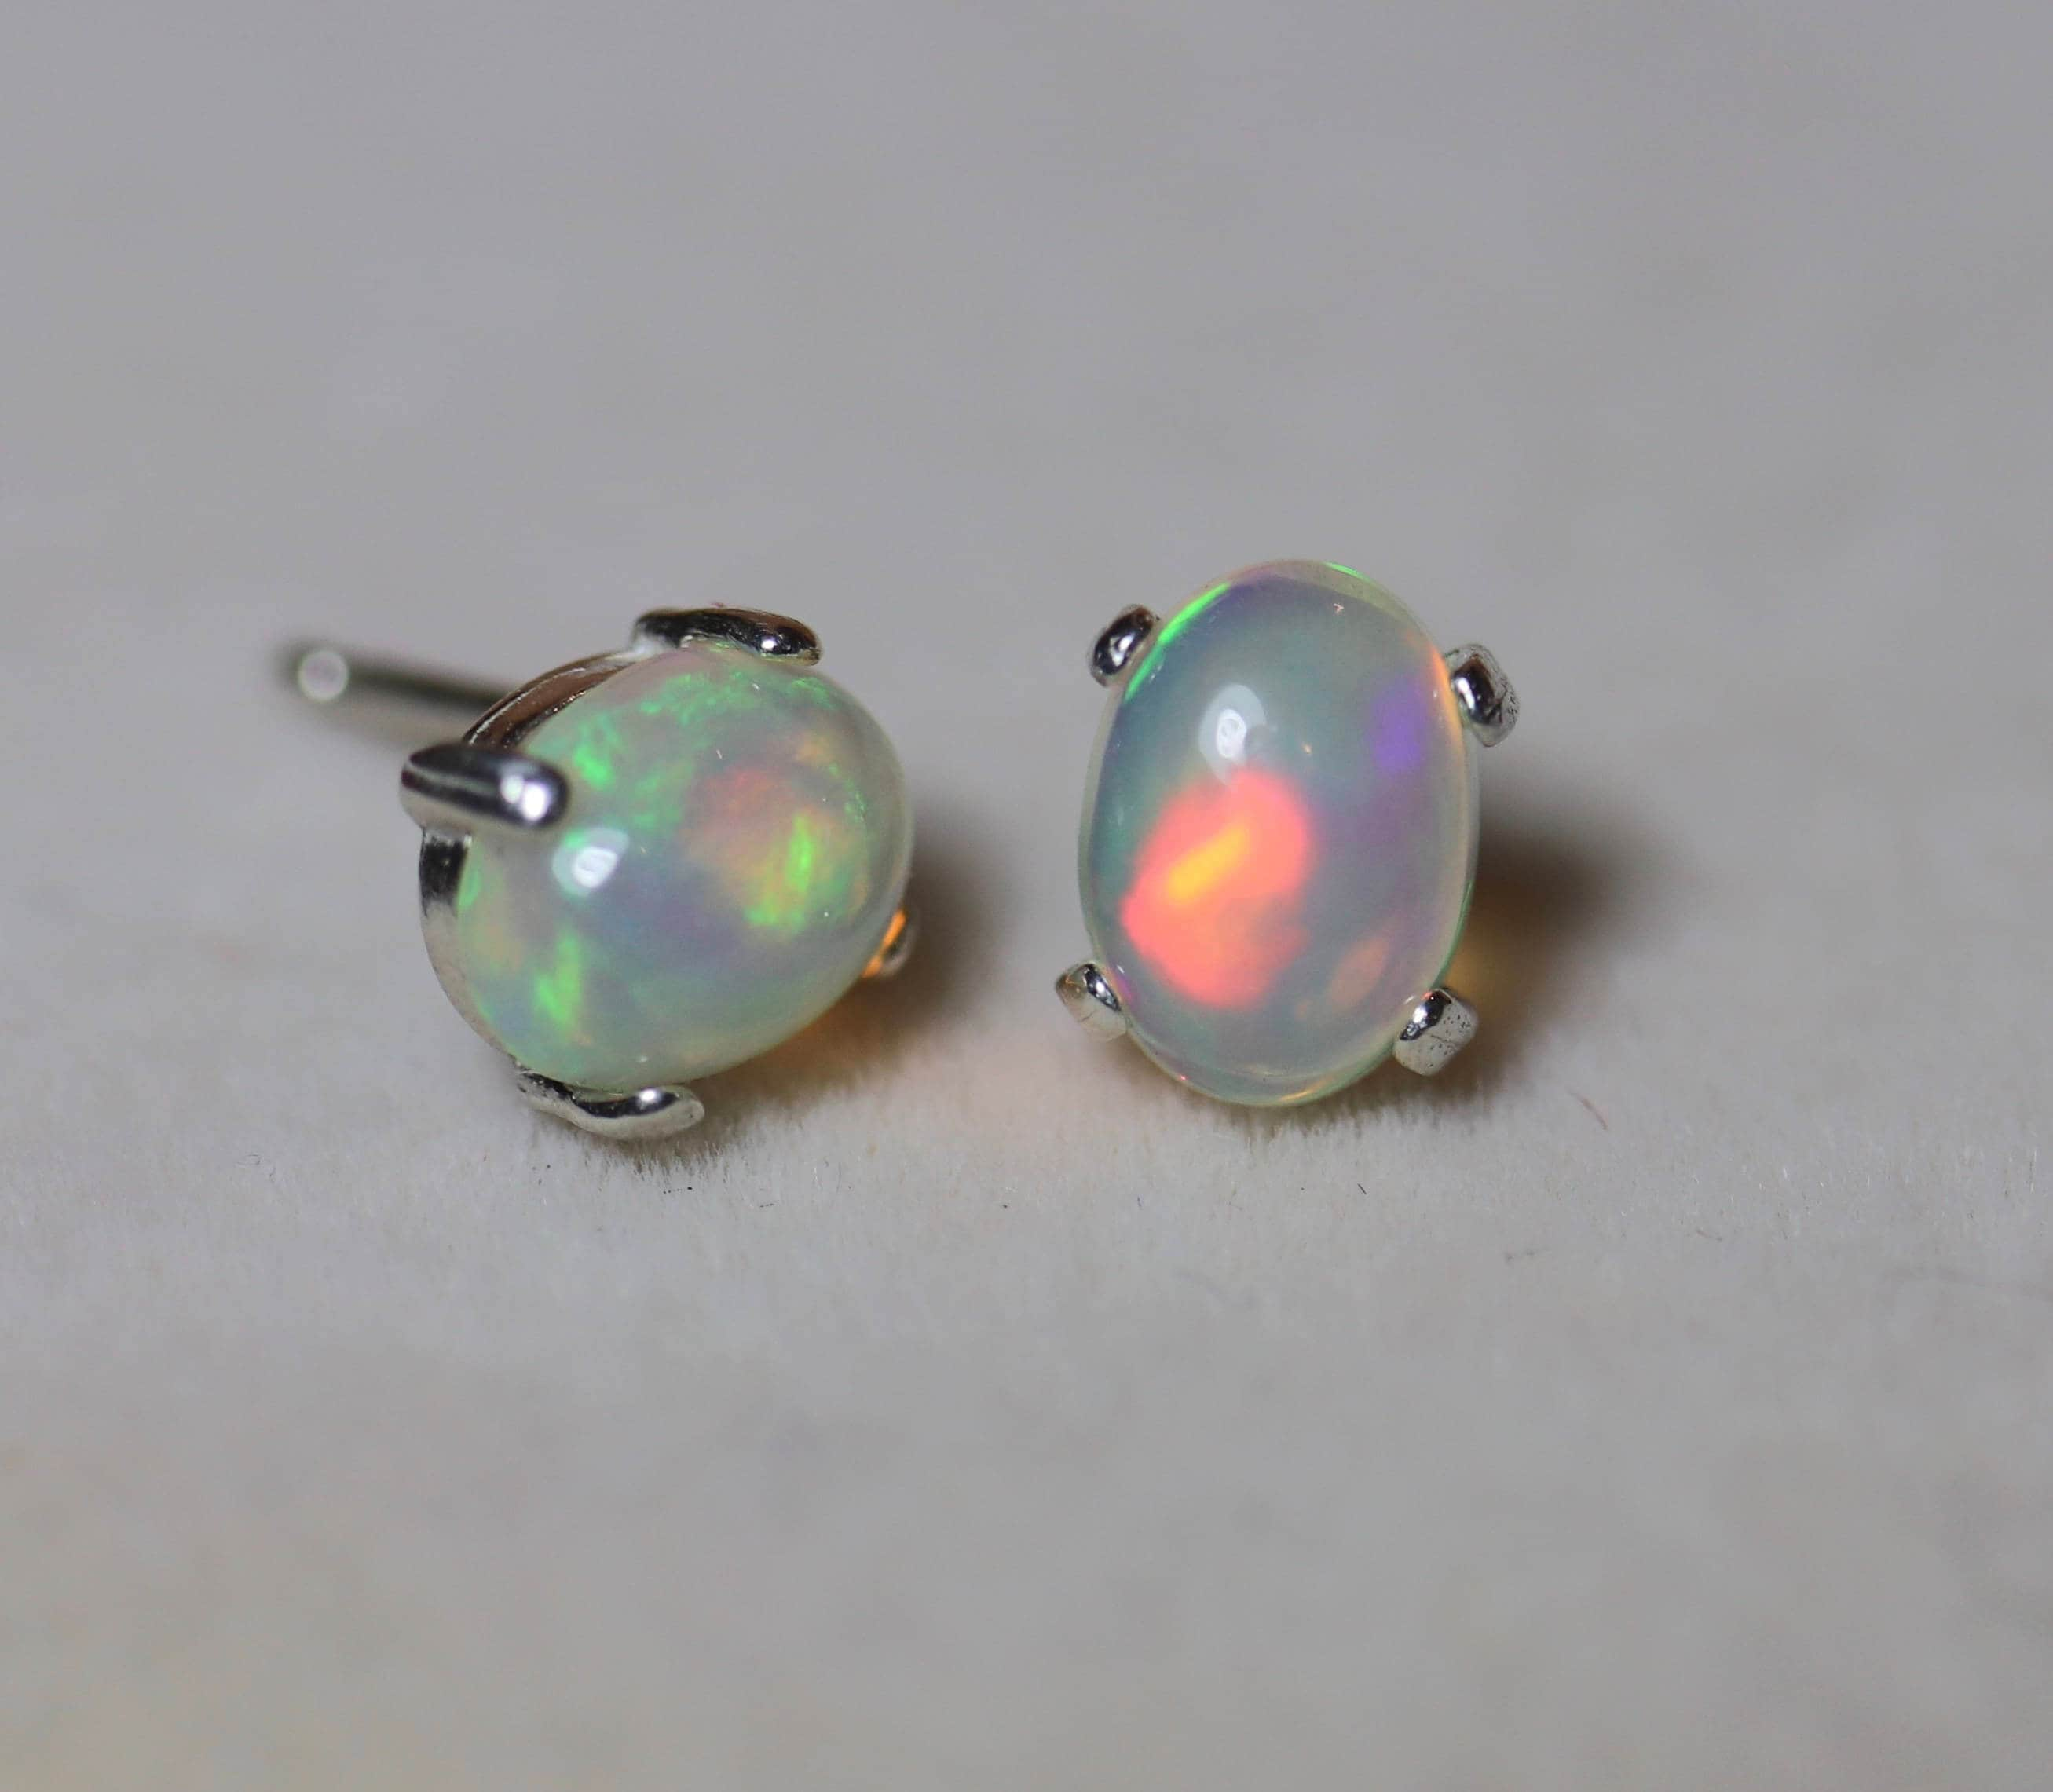 ethiopian gold earrings in white tw opal